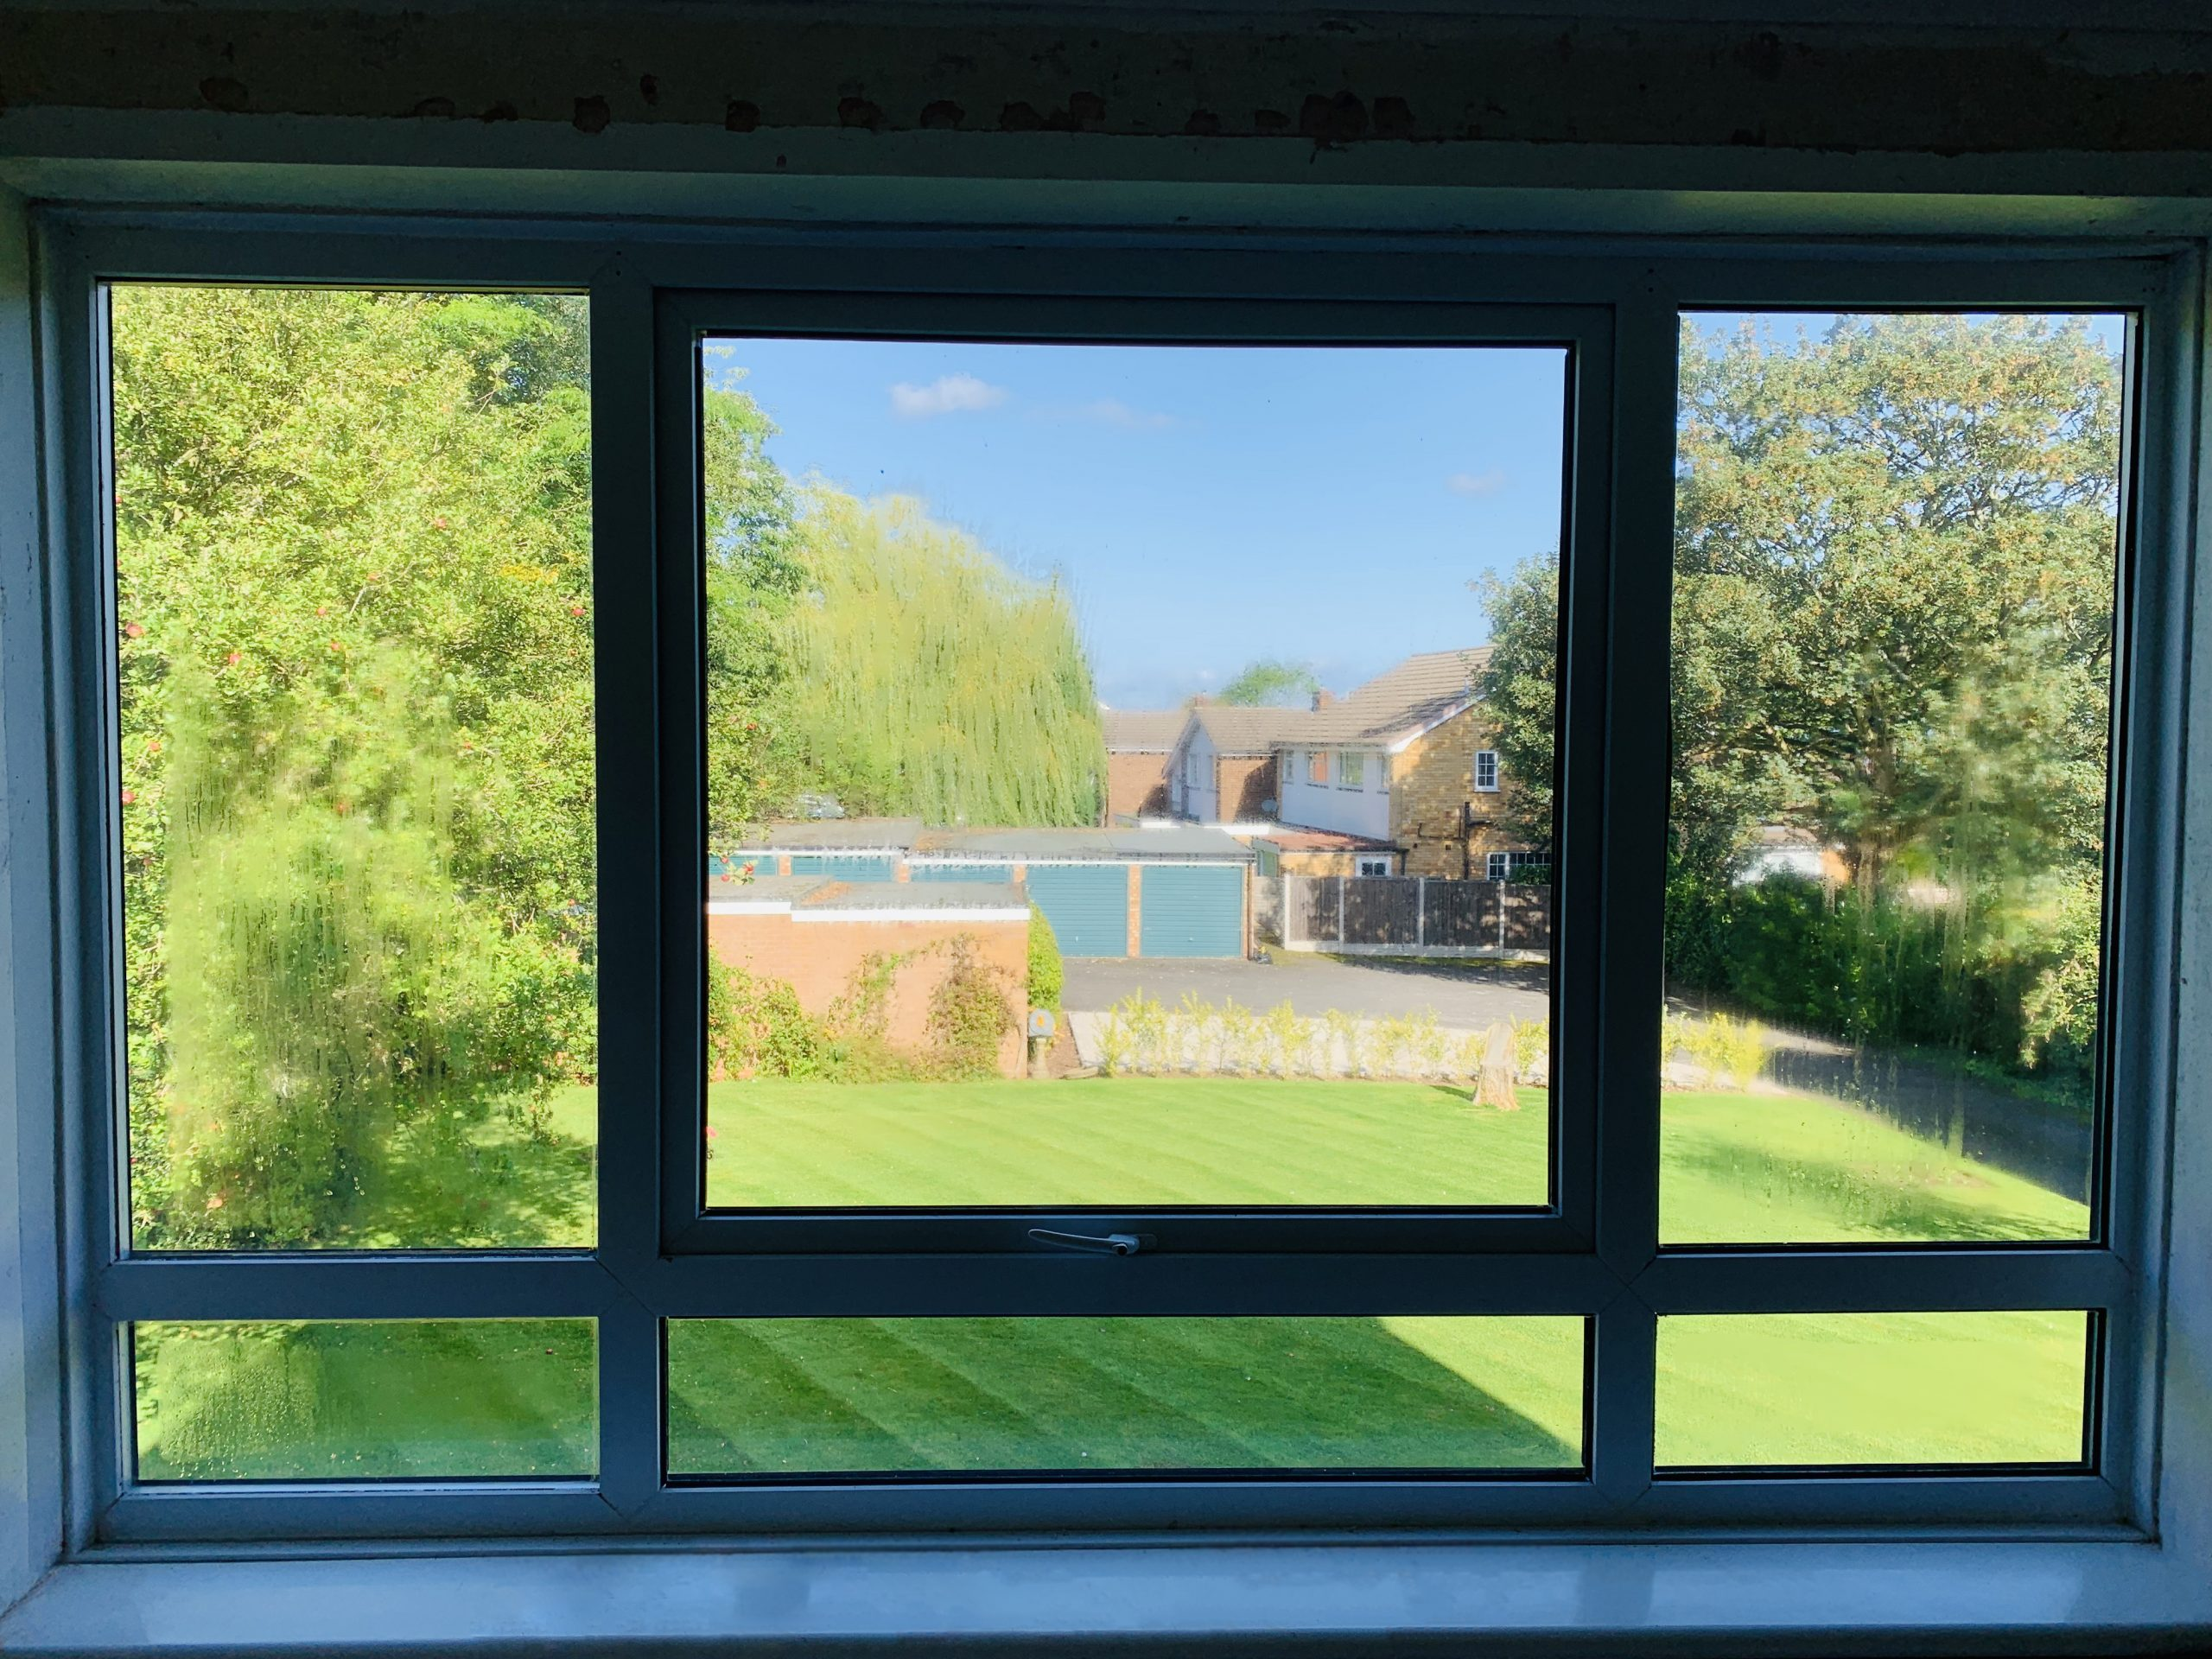 cloudy window replacement sutton coldfield